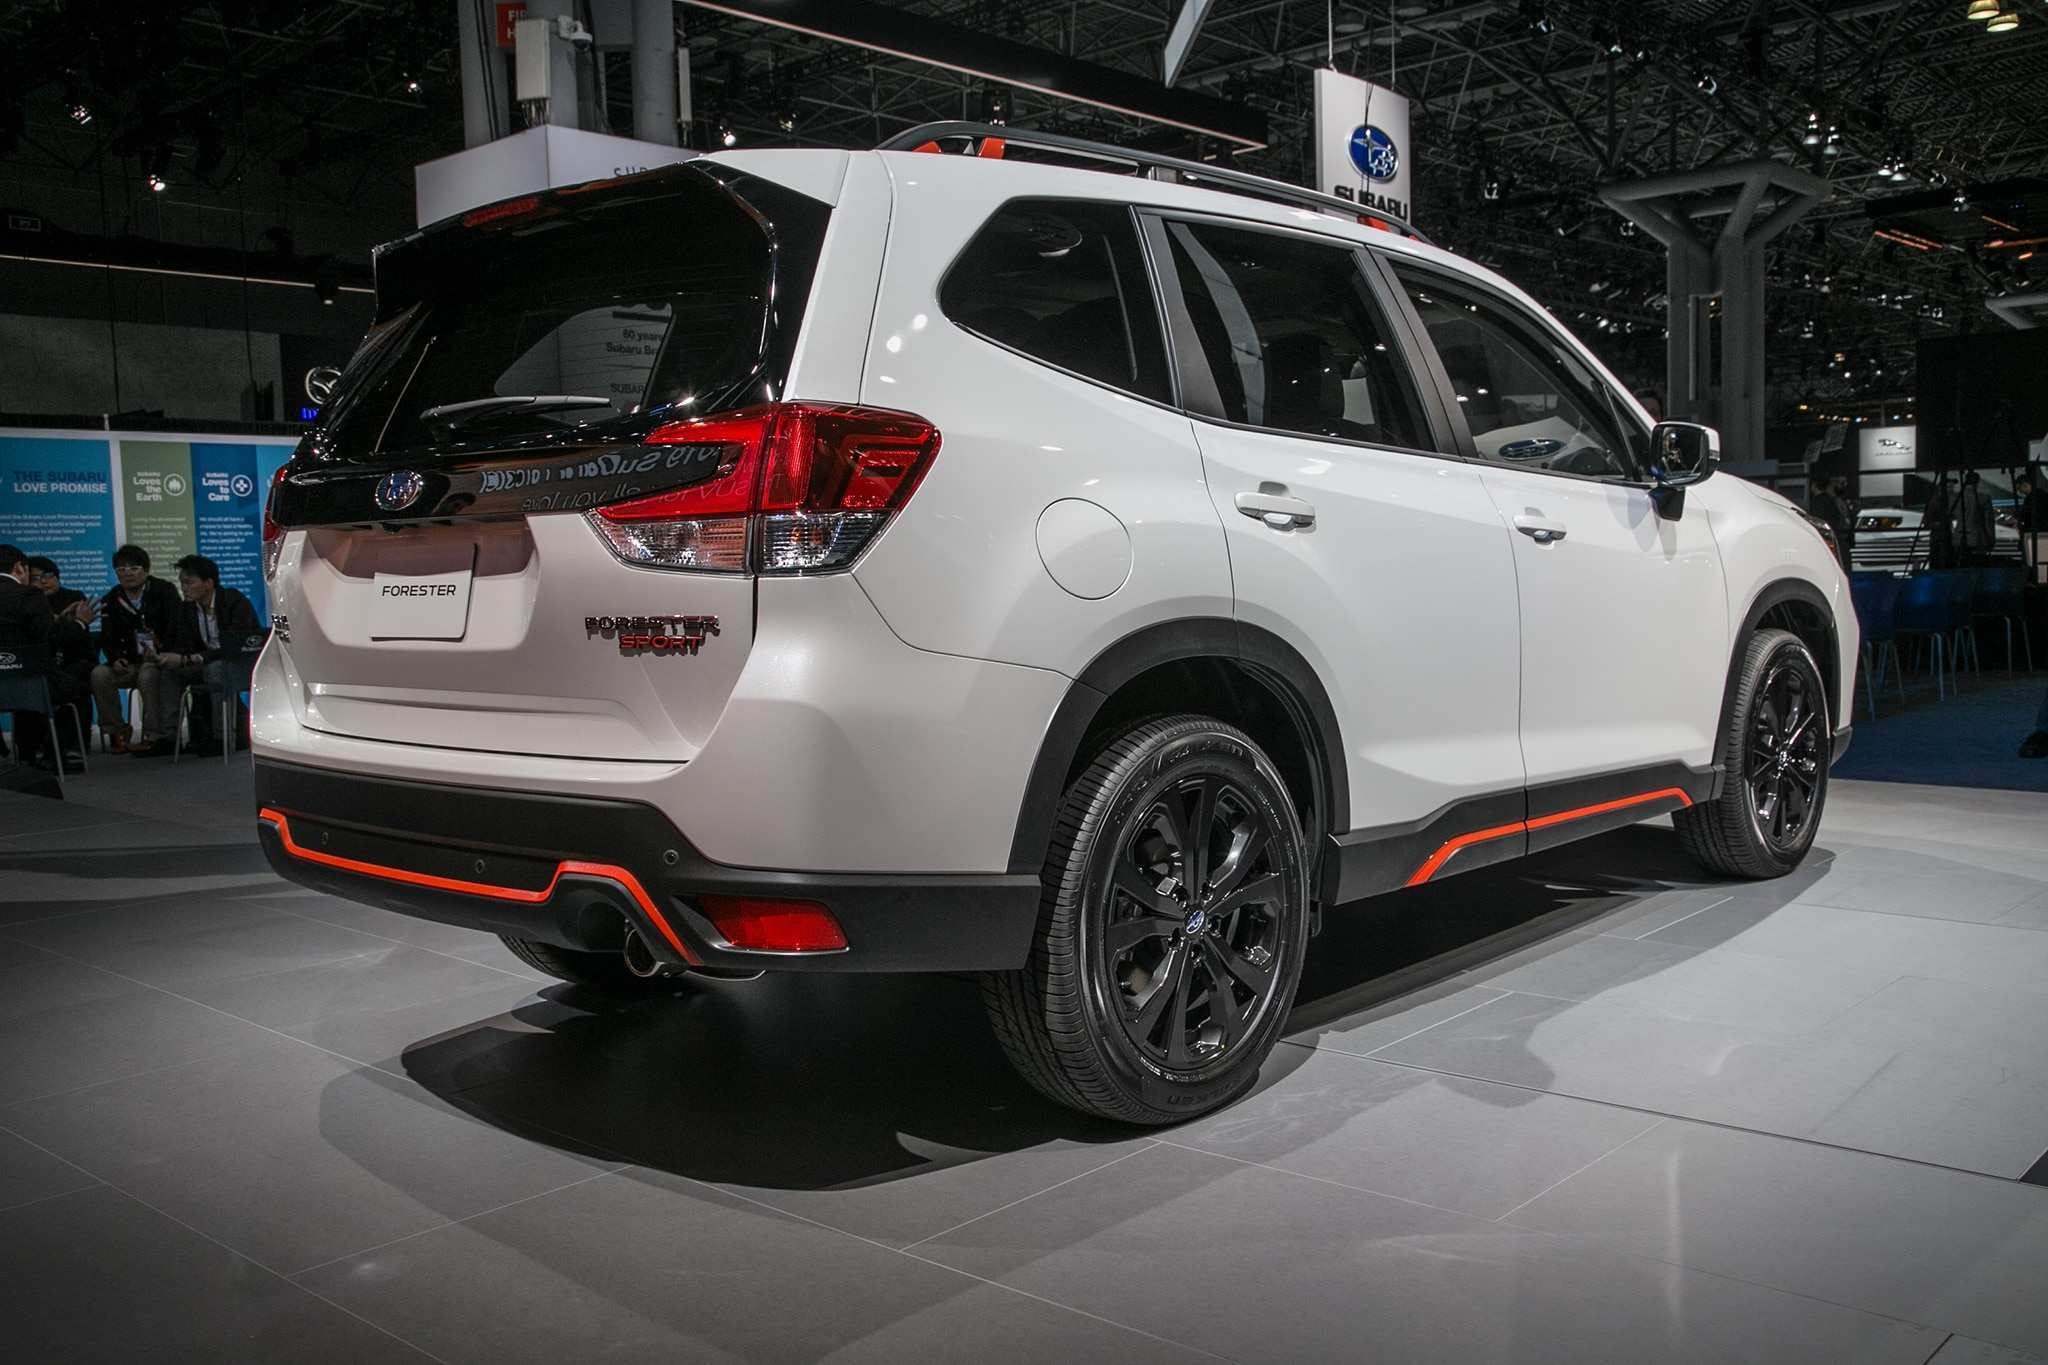 21 New Subaru 2019 Exterior Colors Review Price with Subaru 2019 Exterior Colors Review